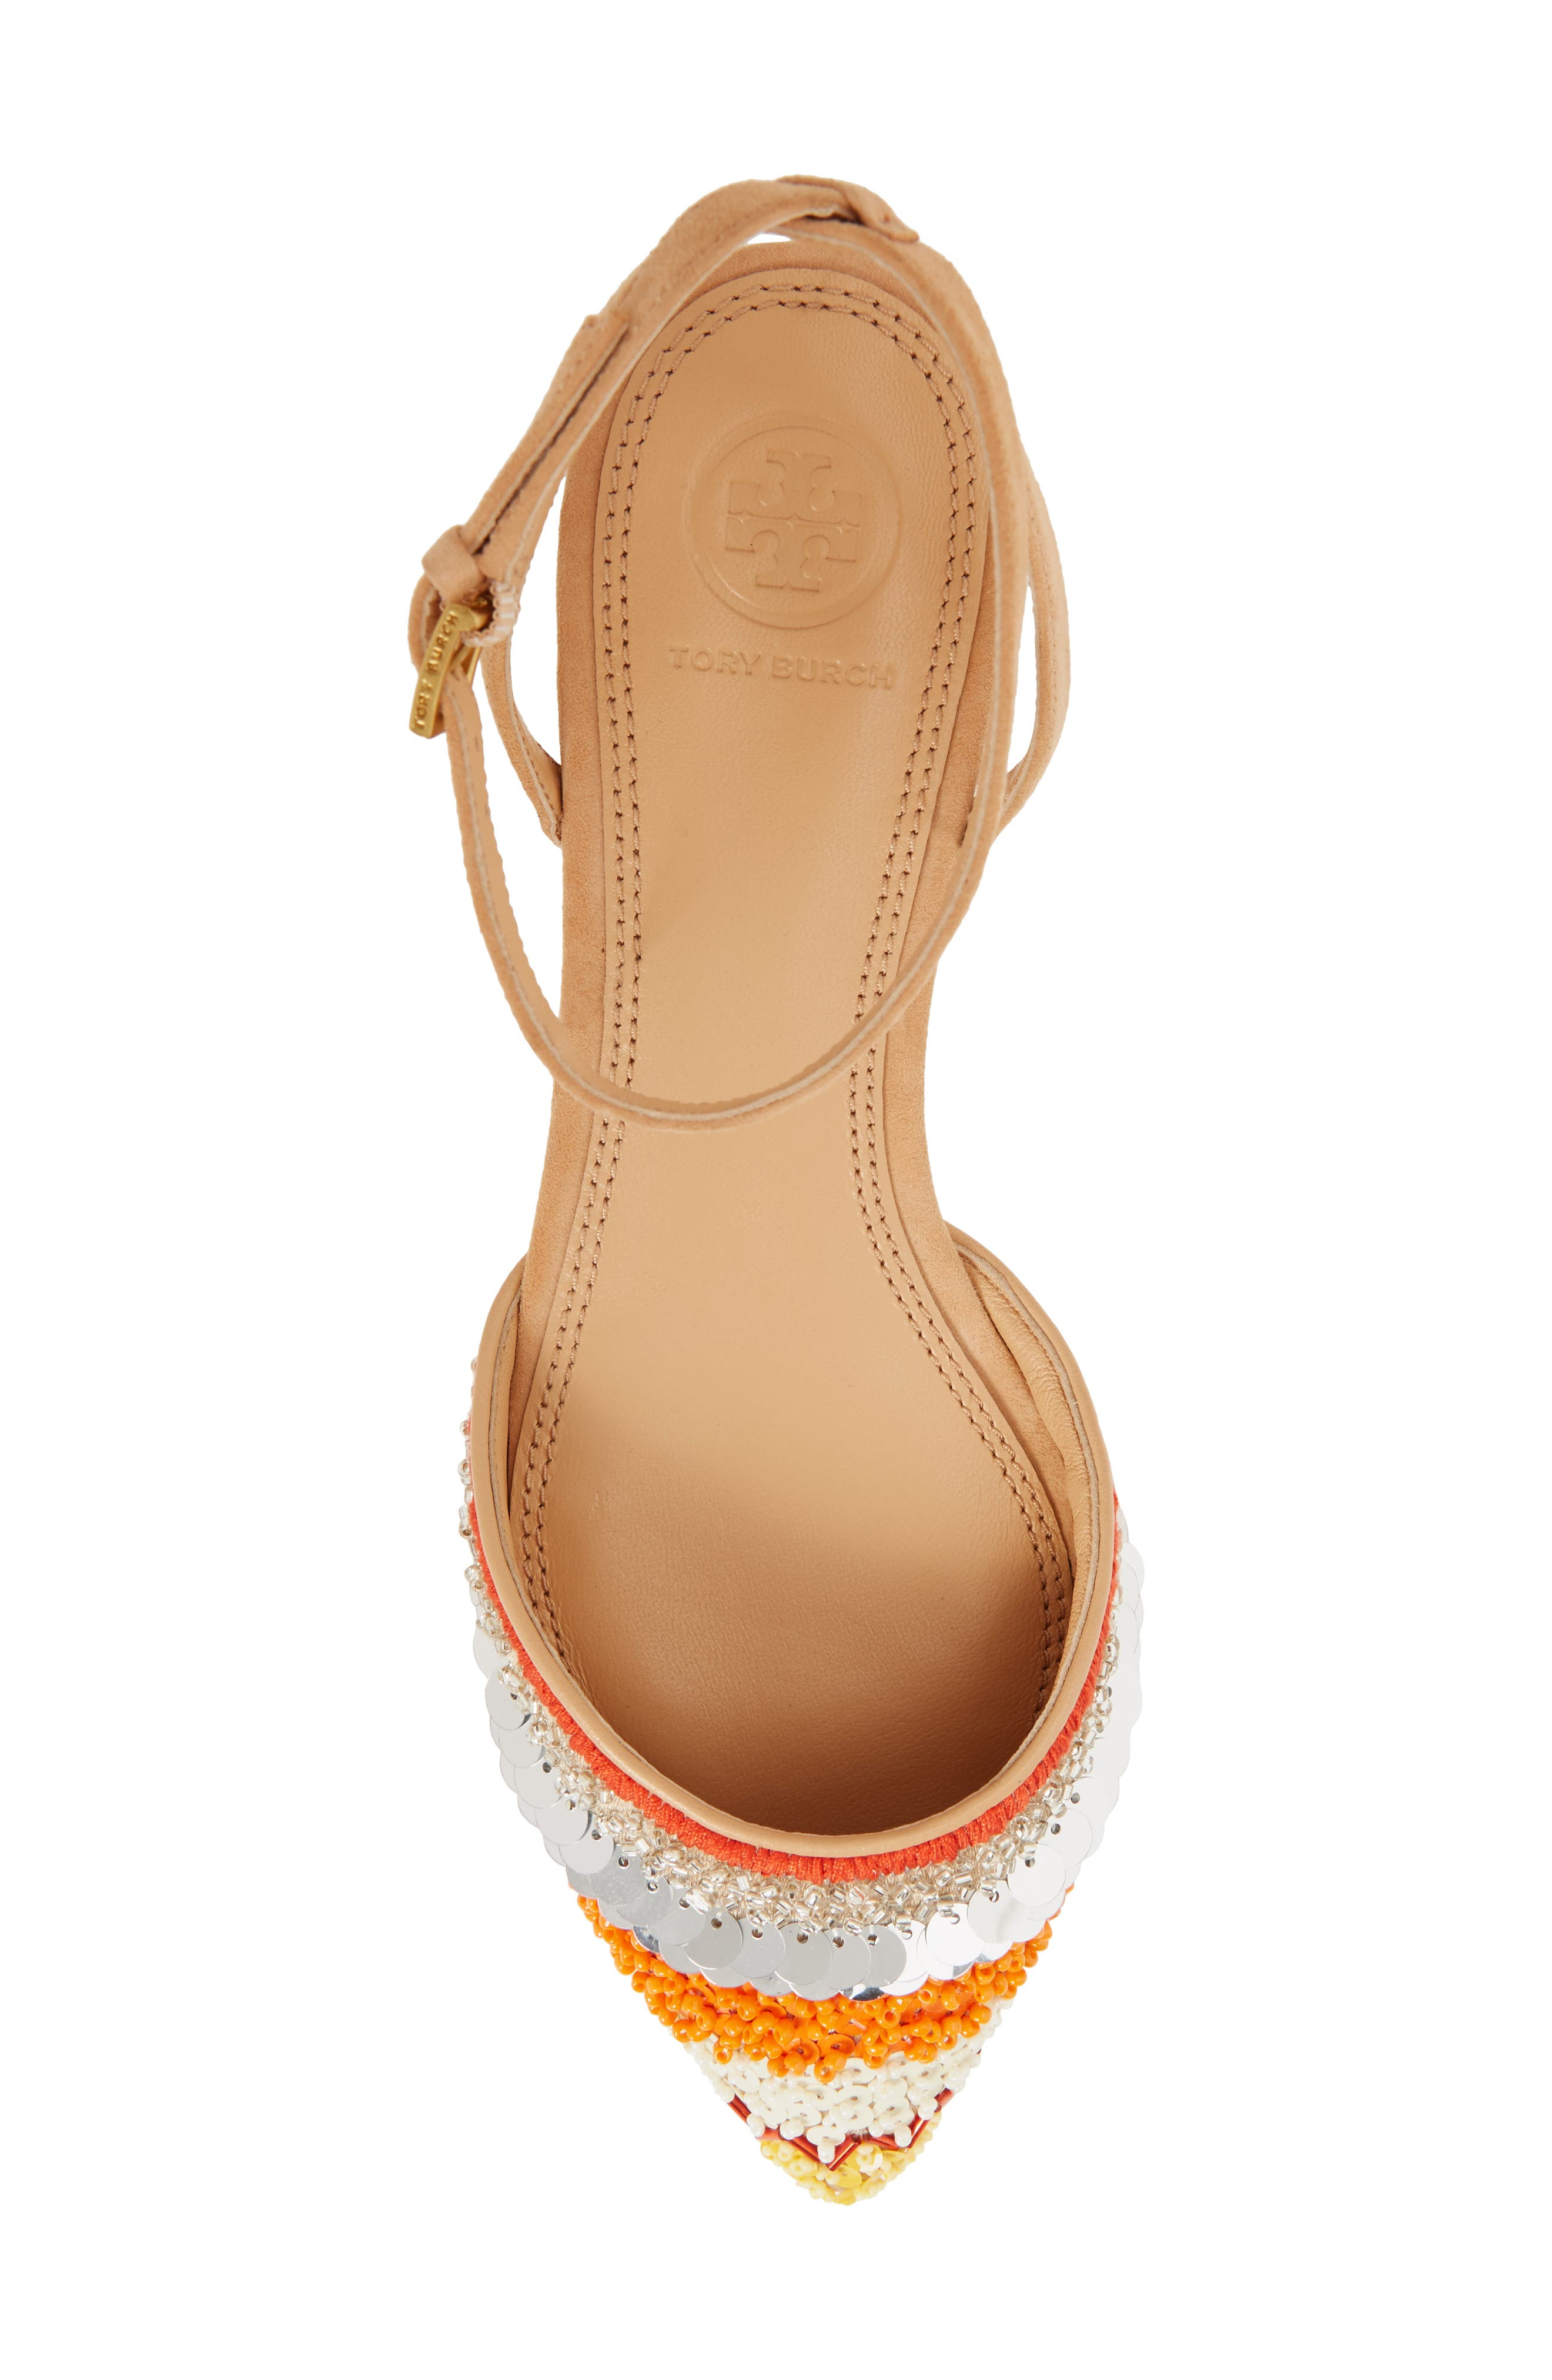 Isle Embellished Ankle Strap Flat,                             Alternate thumbnail 5, color,                             Multi Color/ Natural